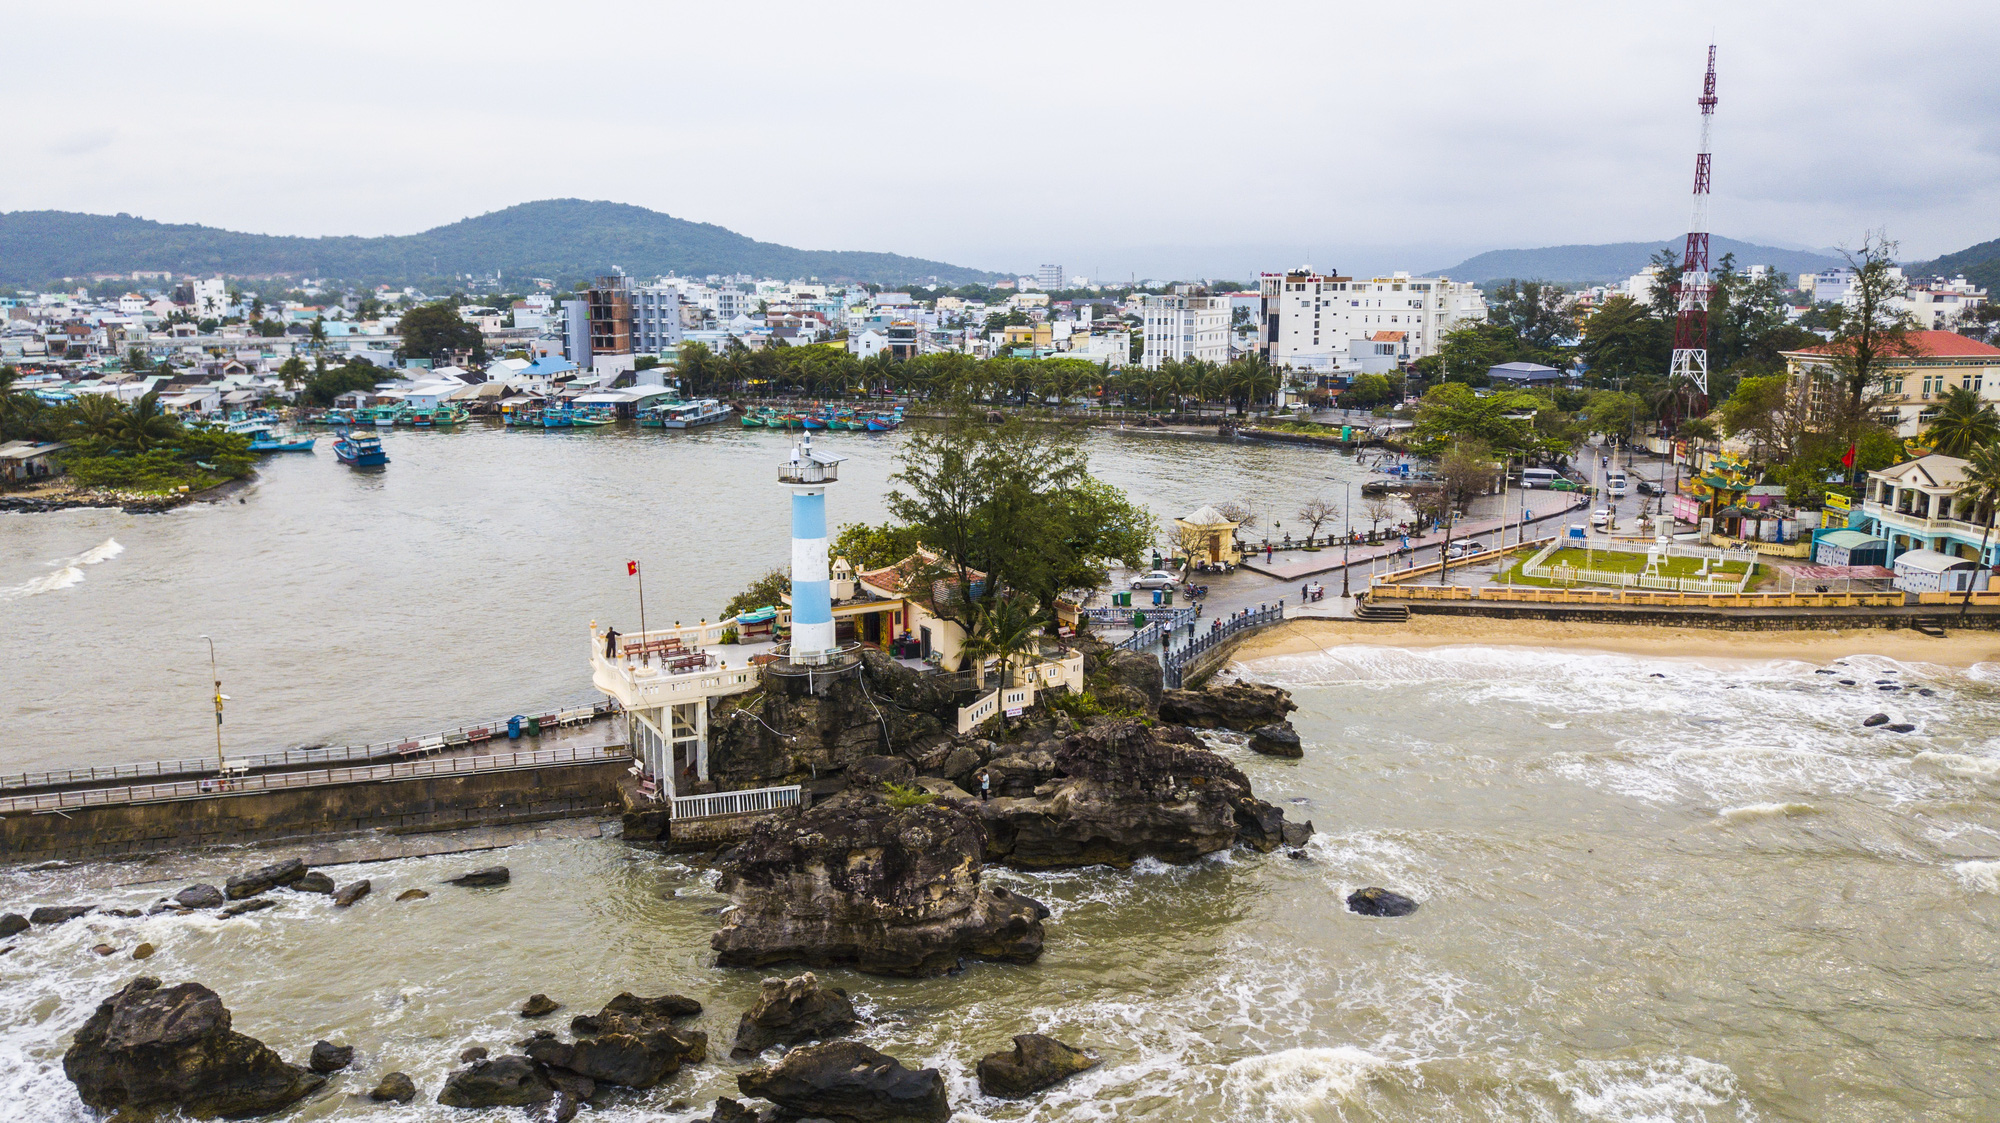 Dinh Cau (Cau Temple) in Duong Dong Town, Phu Quoc Island off Kien Giang Province, Vietnam is seen in this aerial photo. Photo: Quang Dinh / Tuoi Tre